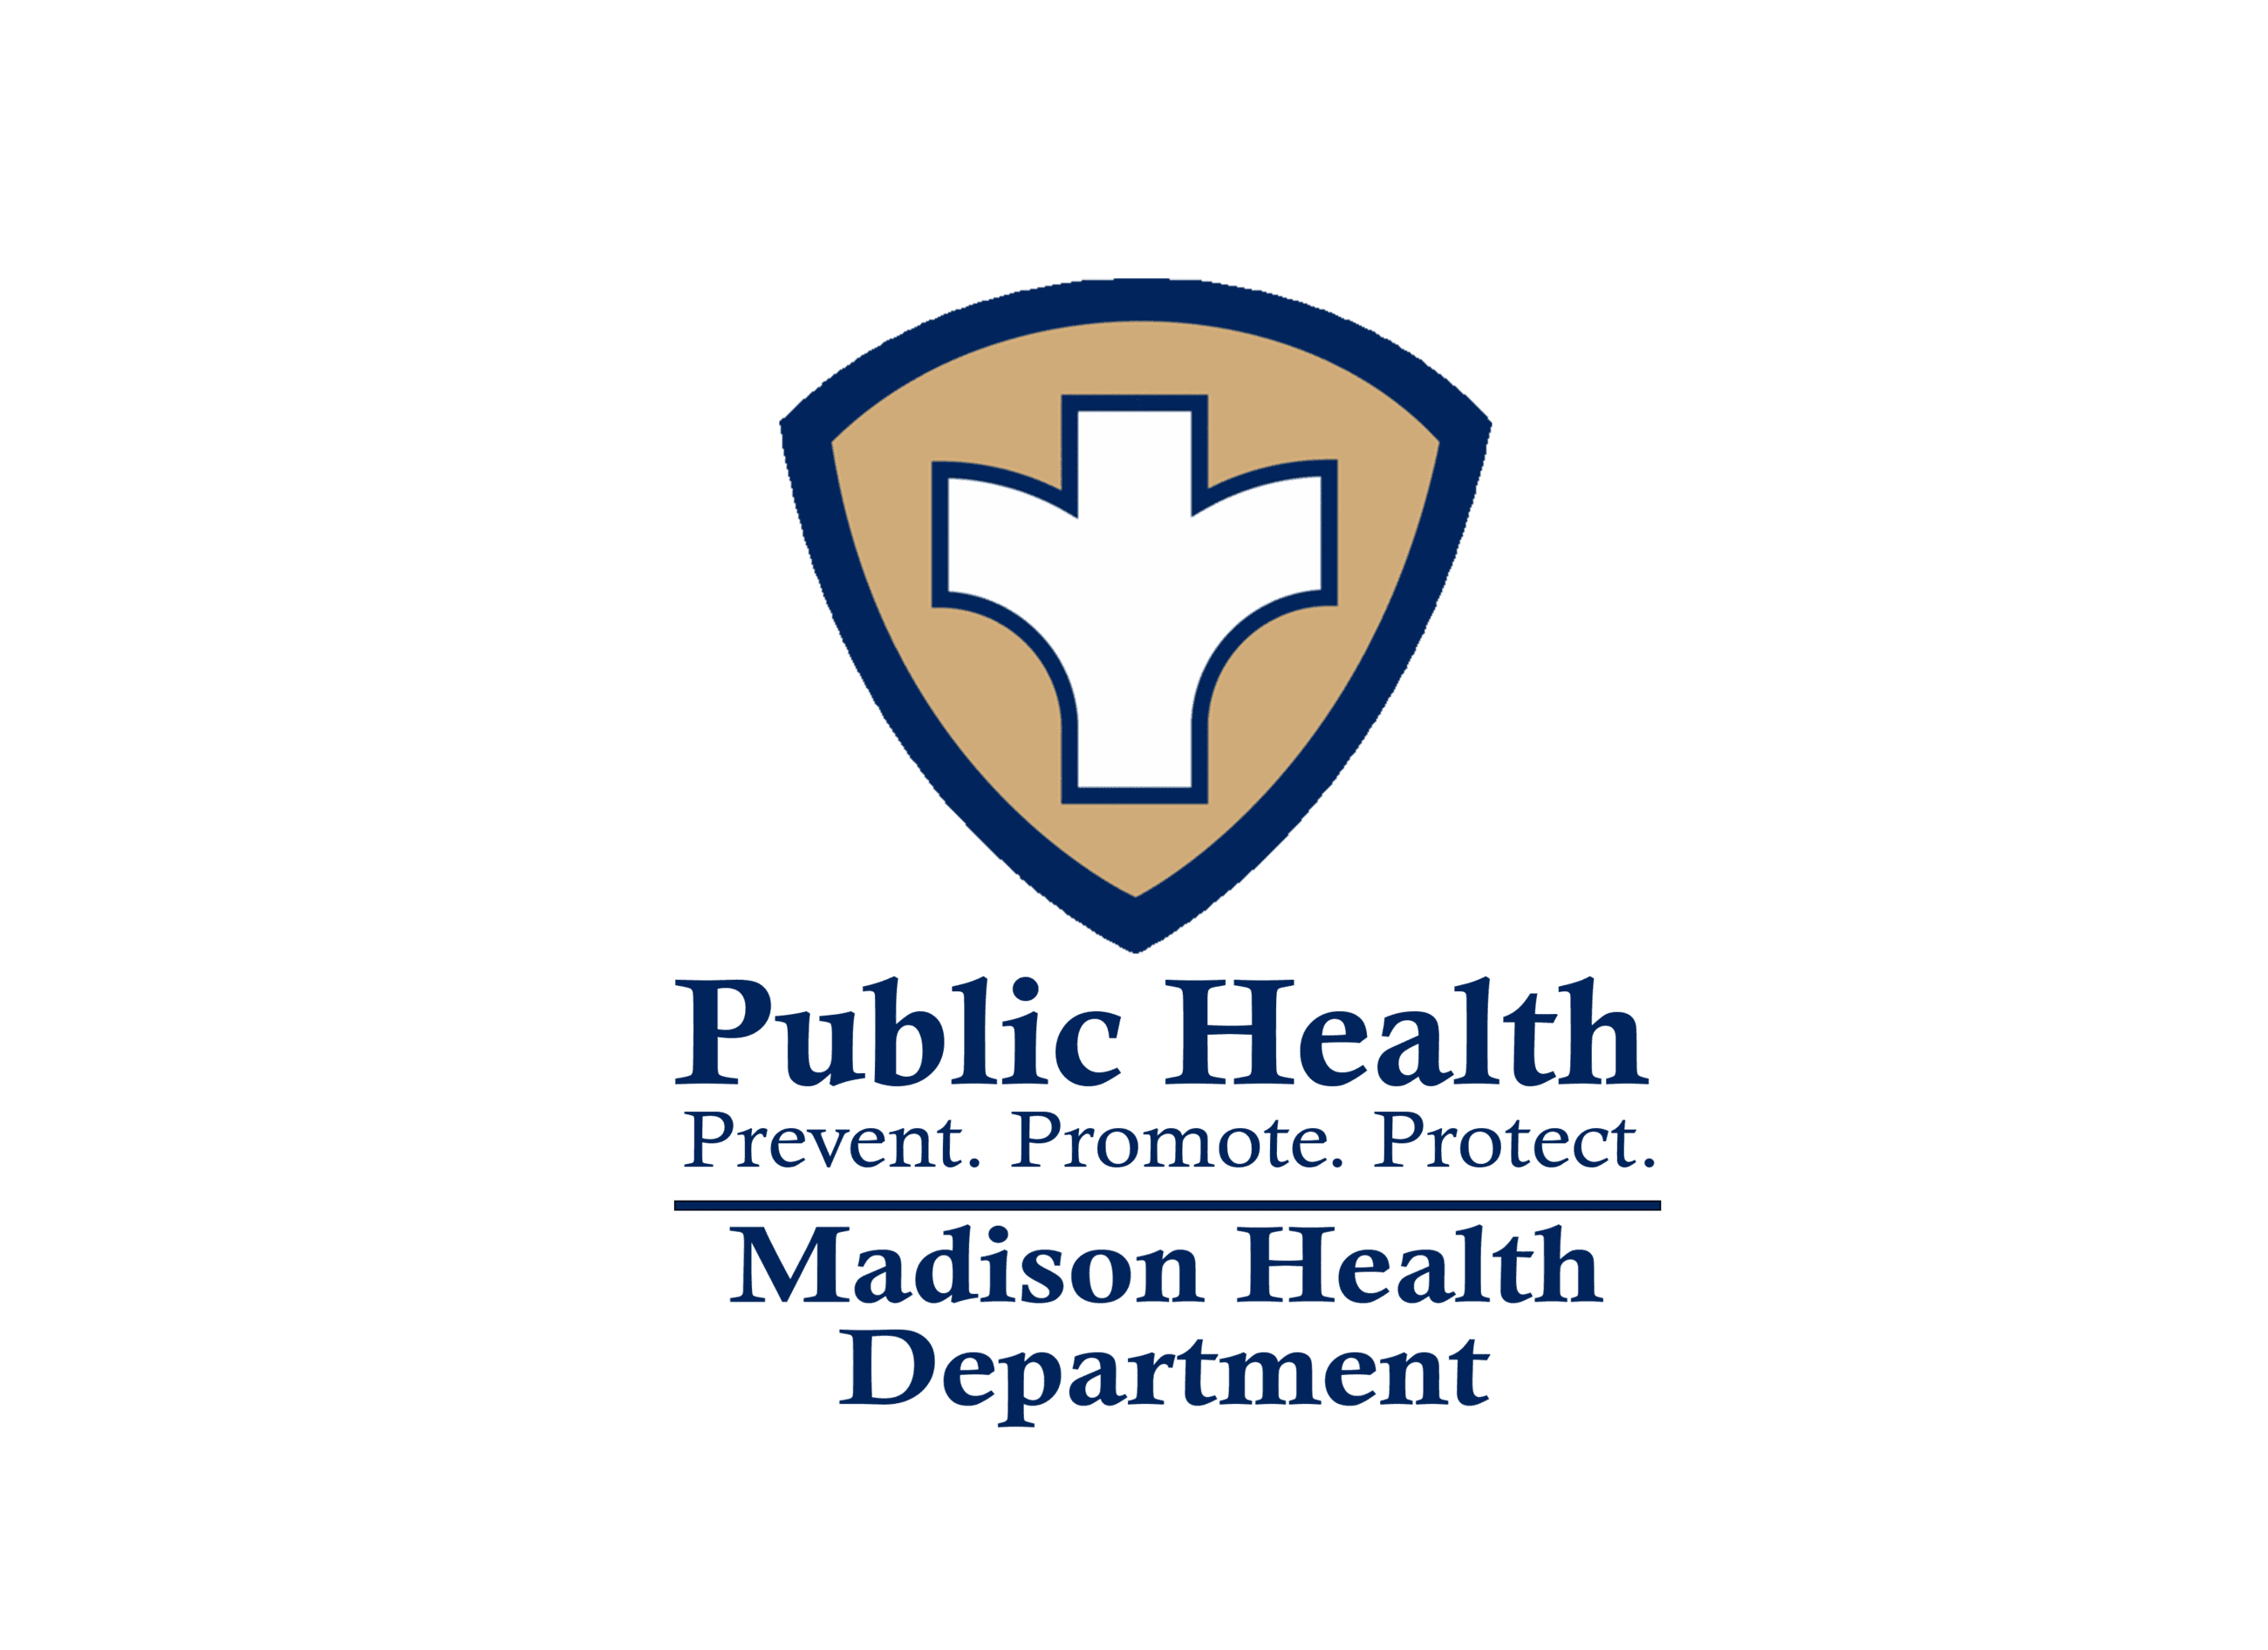 Public Health Logo transparent